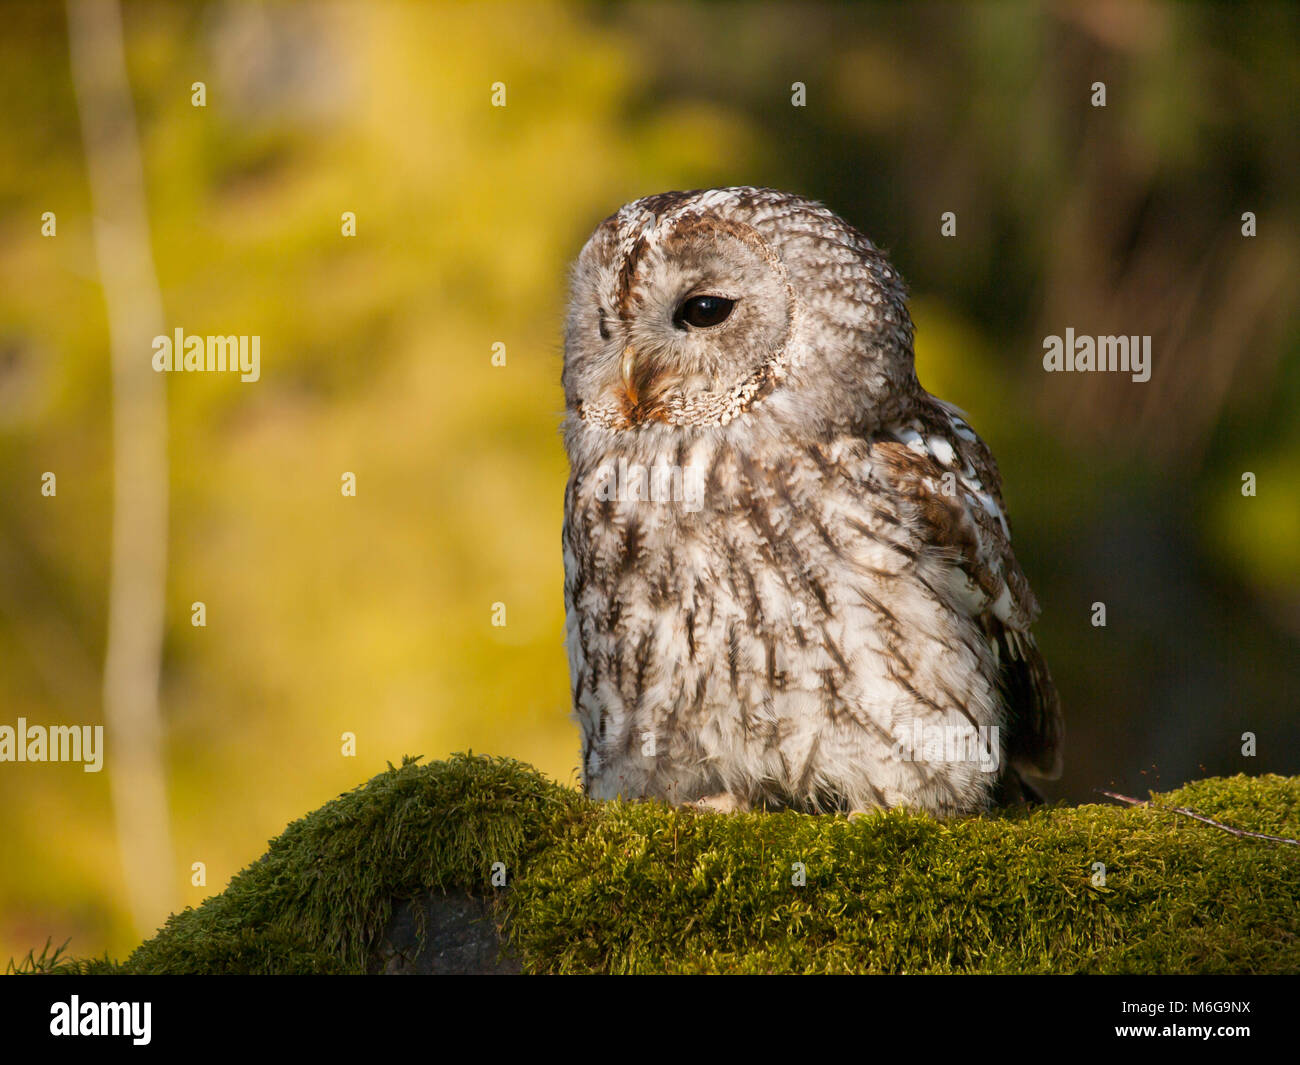 Portrait of Strix aluco - Ttawny owl sitting on moss in forest - Stock Image